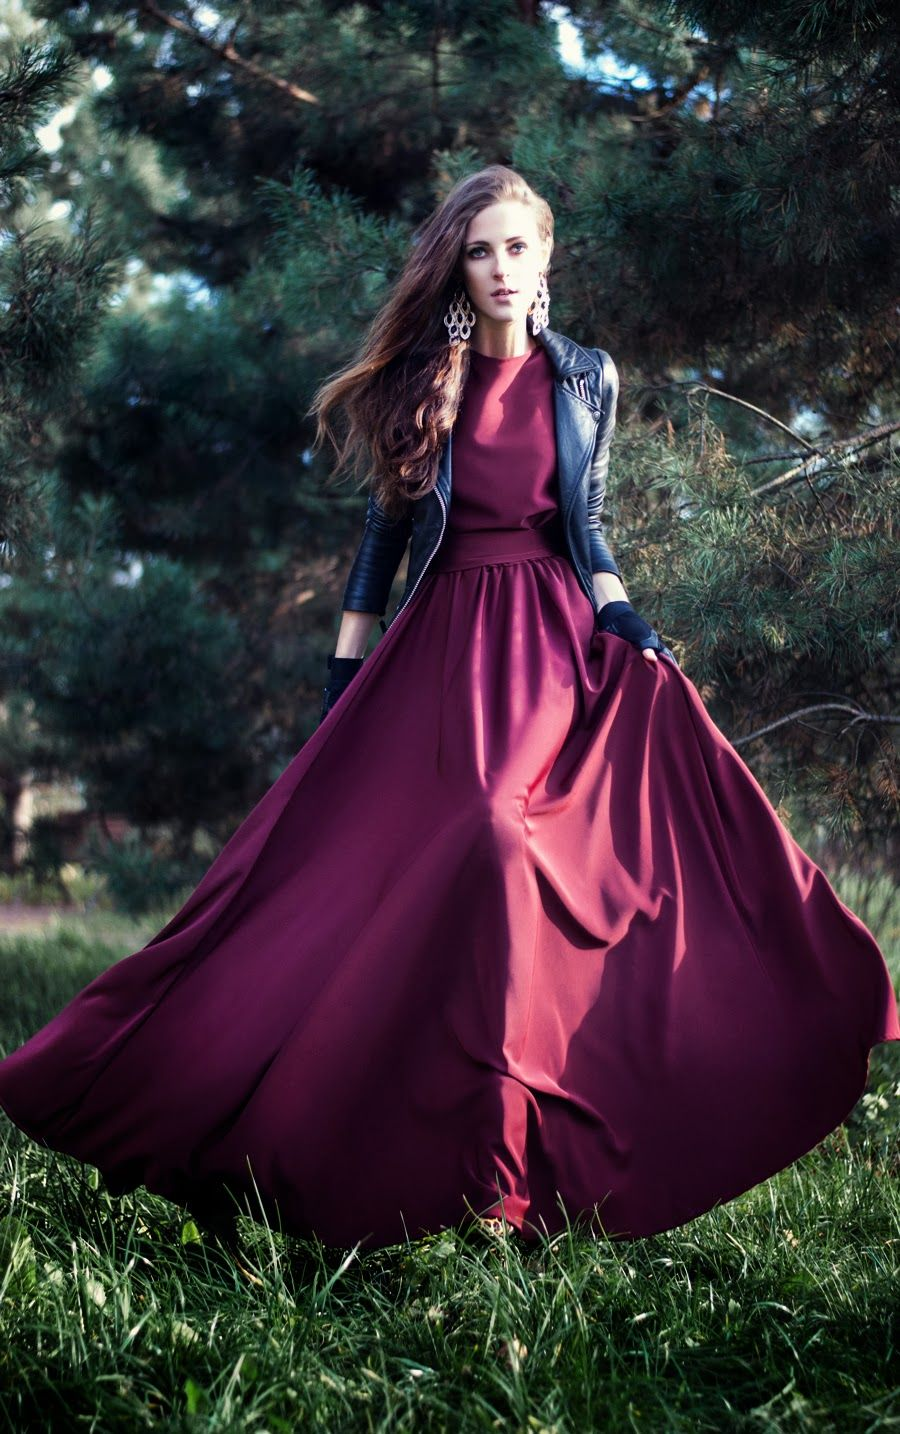 red dress, burgundy, leather jacket and dress, outfit